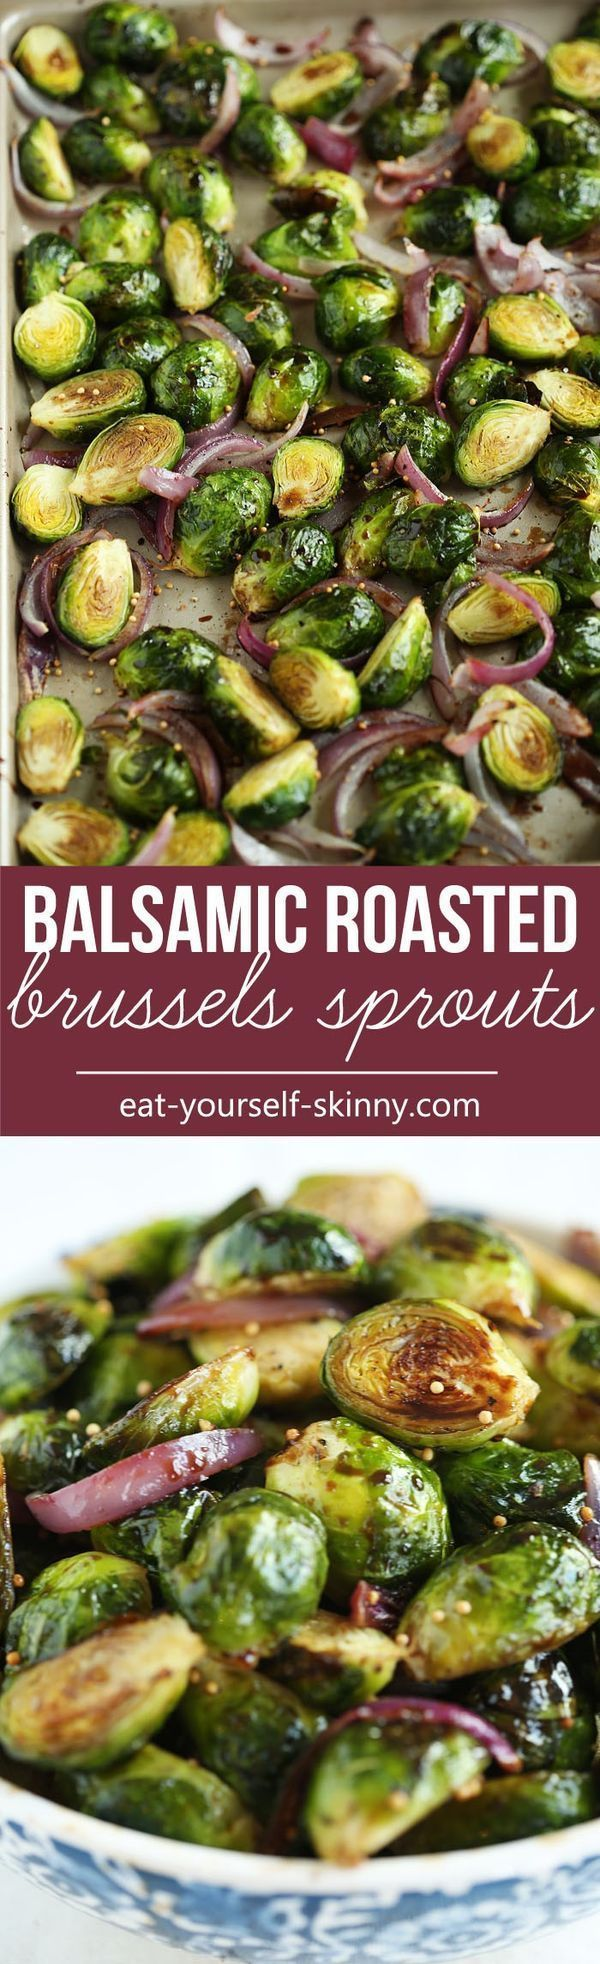 Balsamic Roasted Brussels Sprouts - this would be the perfect healthy recipe to serve with dinner instead of my normal boring salad.